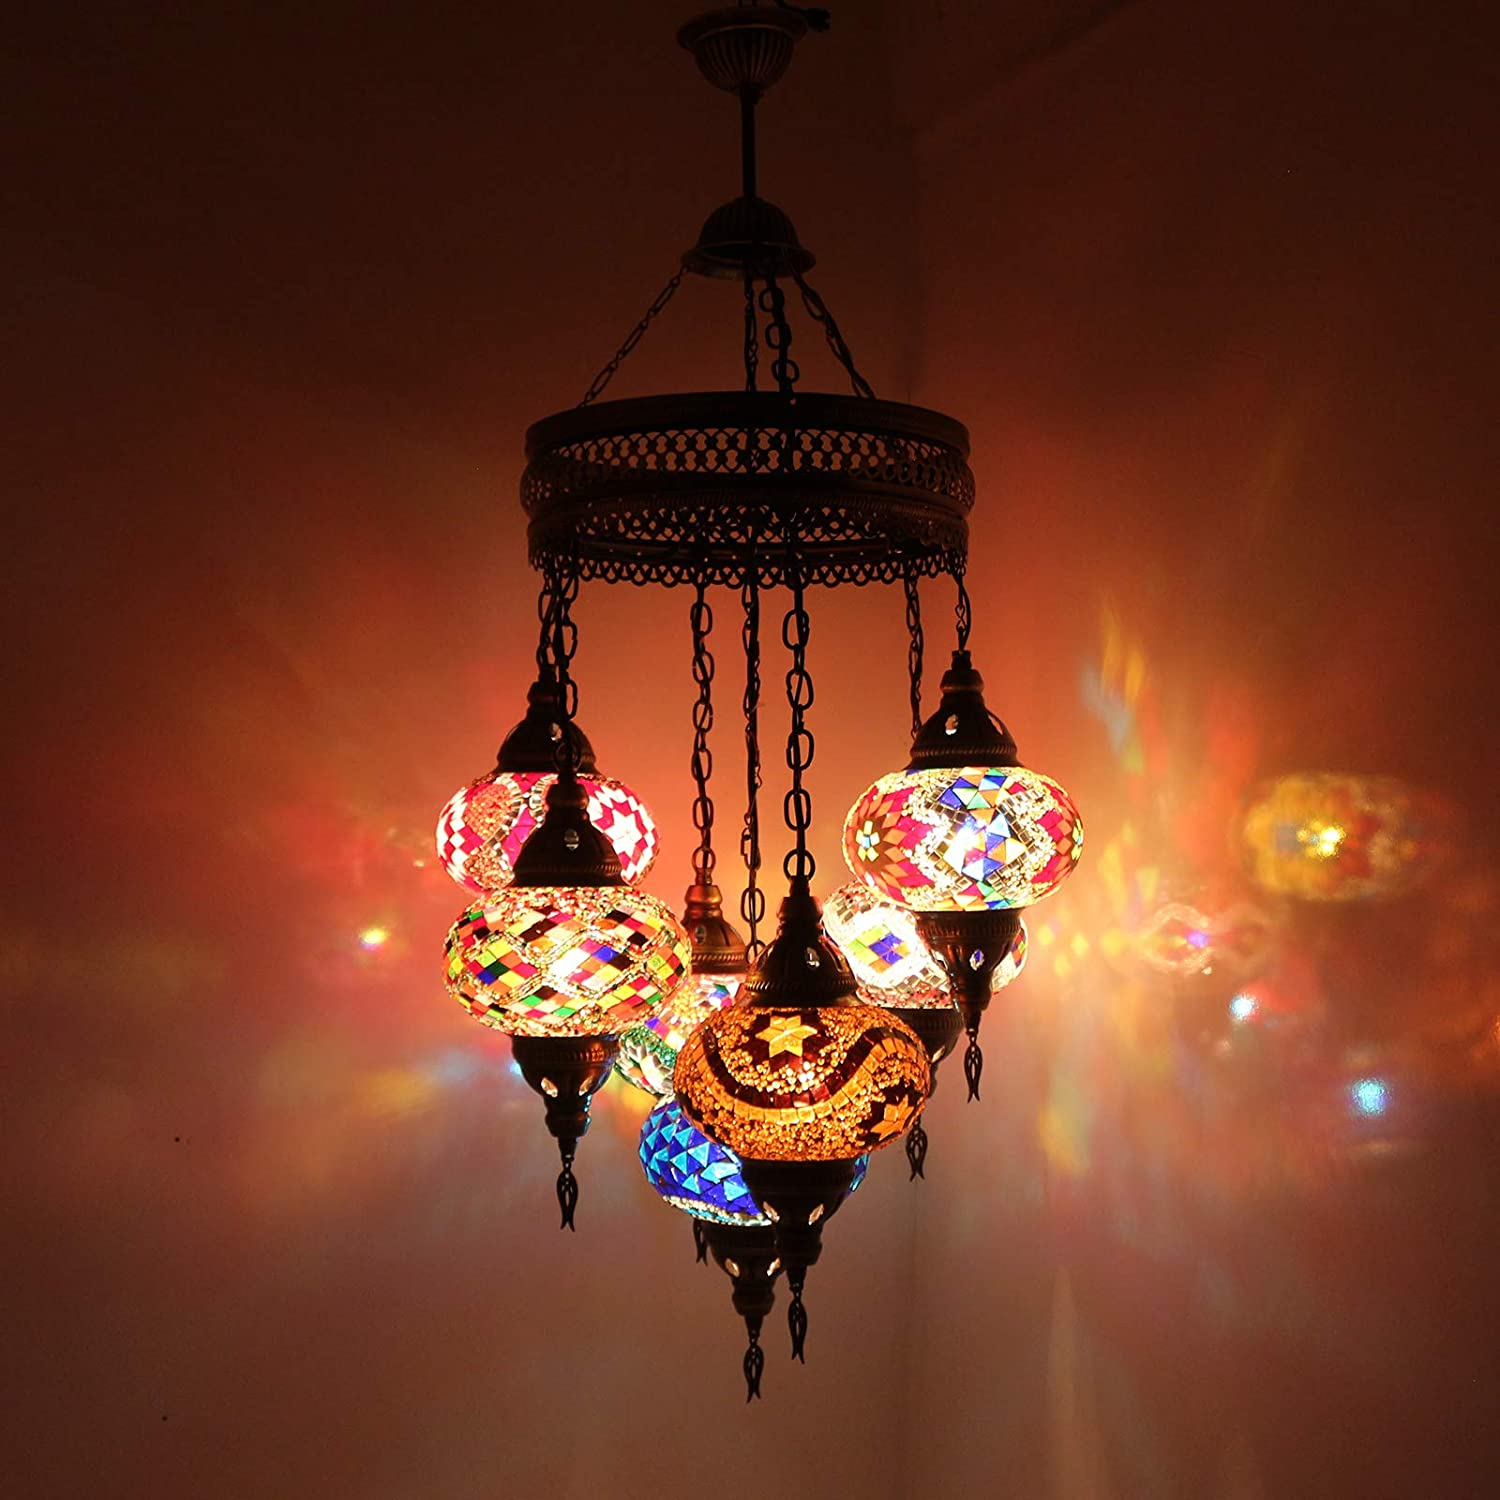 Chandelier, Ceiling Lights, Turkish Lamps, Hanging Mosaic Lights, Pendant, Red Glass, Color Glass, Moroccan Lantern, 5 Bulbs, Express Shipping